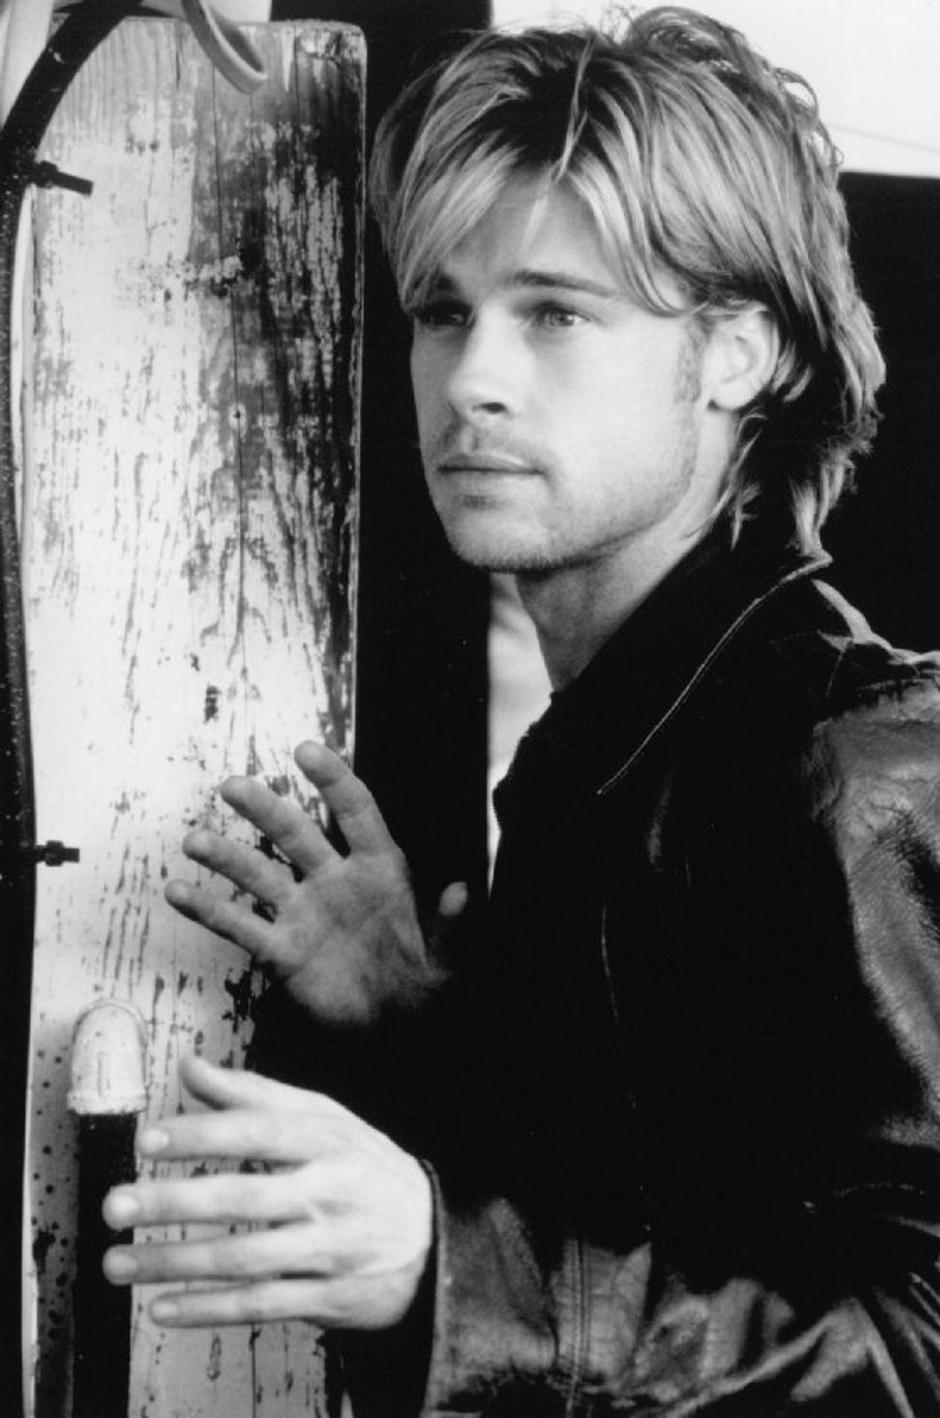 Brad Pitt/The Devil's Own | Author: Universal Pictures